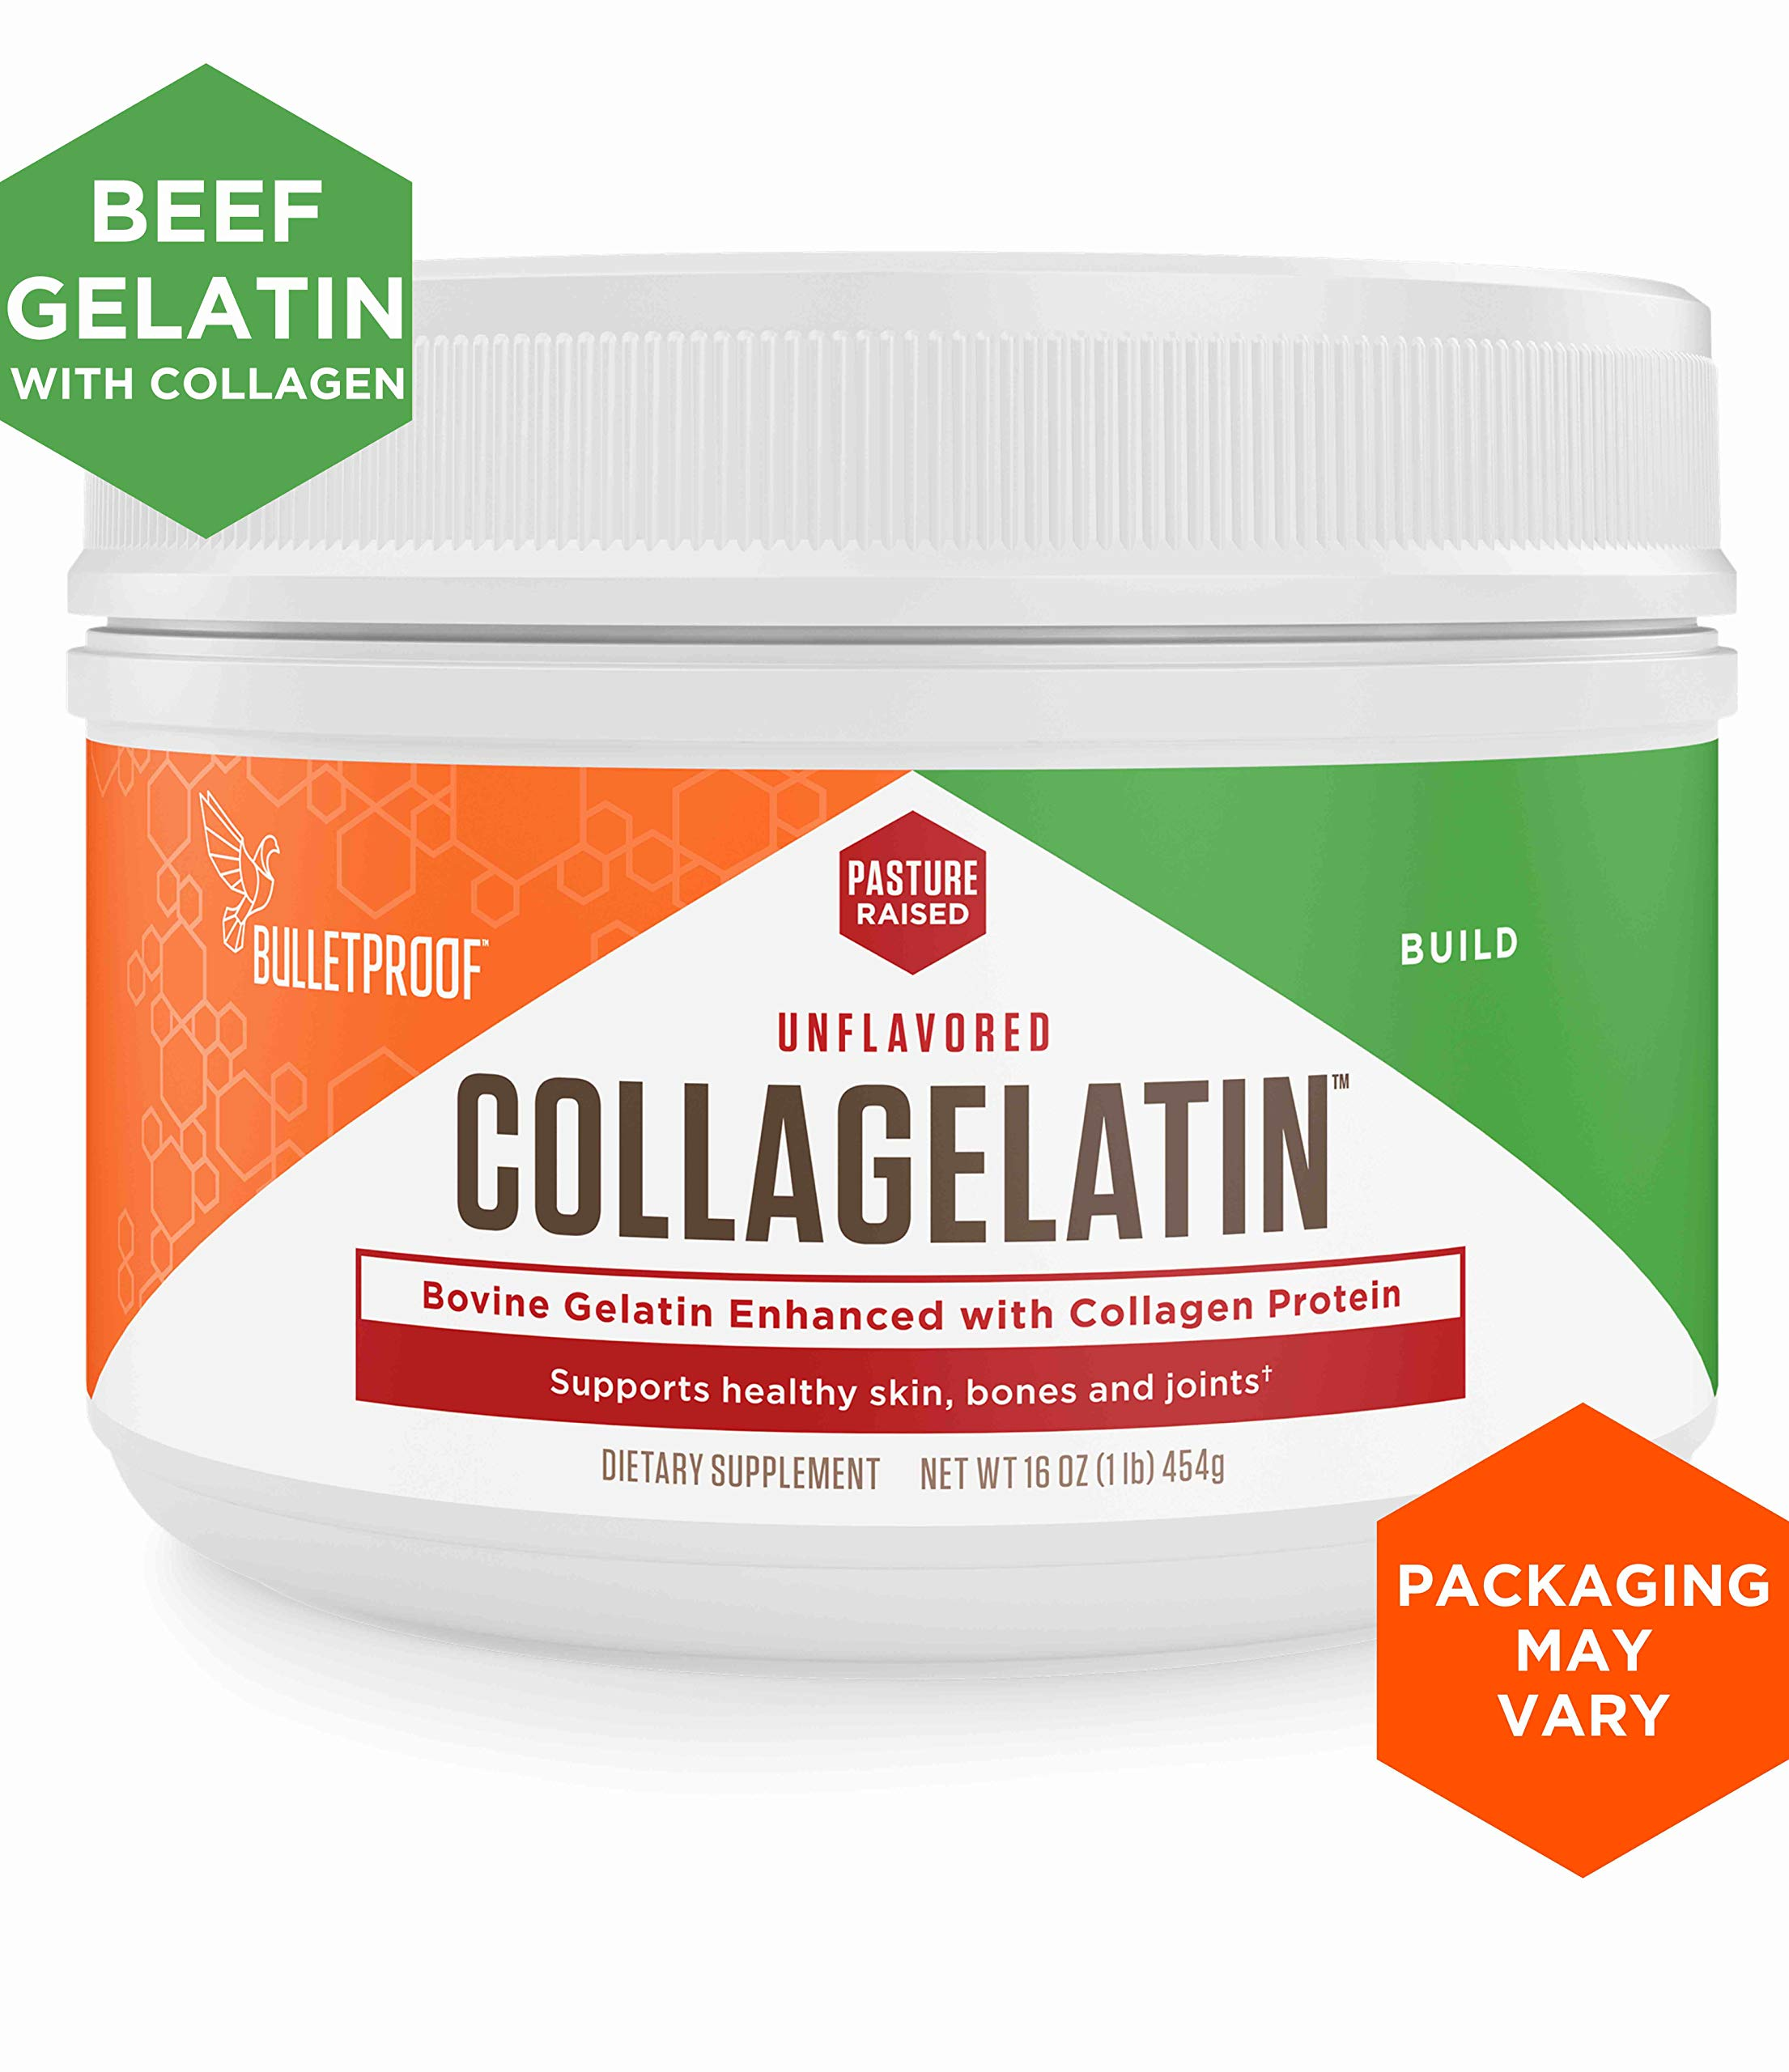 Bulletproof CollaGelatin, Gelatin Enhanced with Collagen Protein, Perfect for The Keto and Paleo Diet Recipes (16 Ounces) by Bulletproof